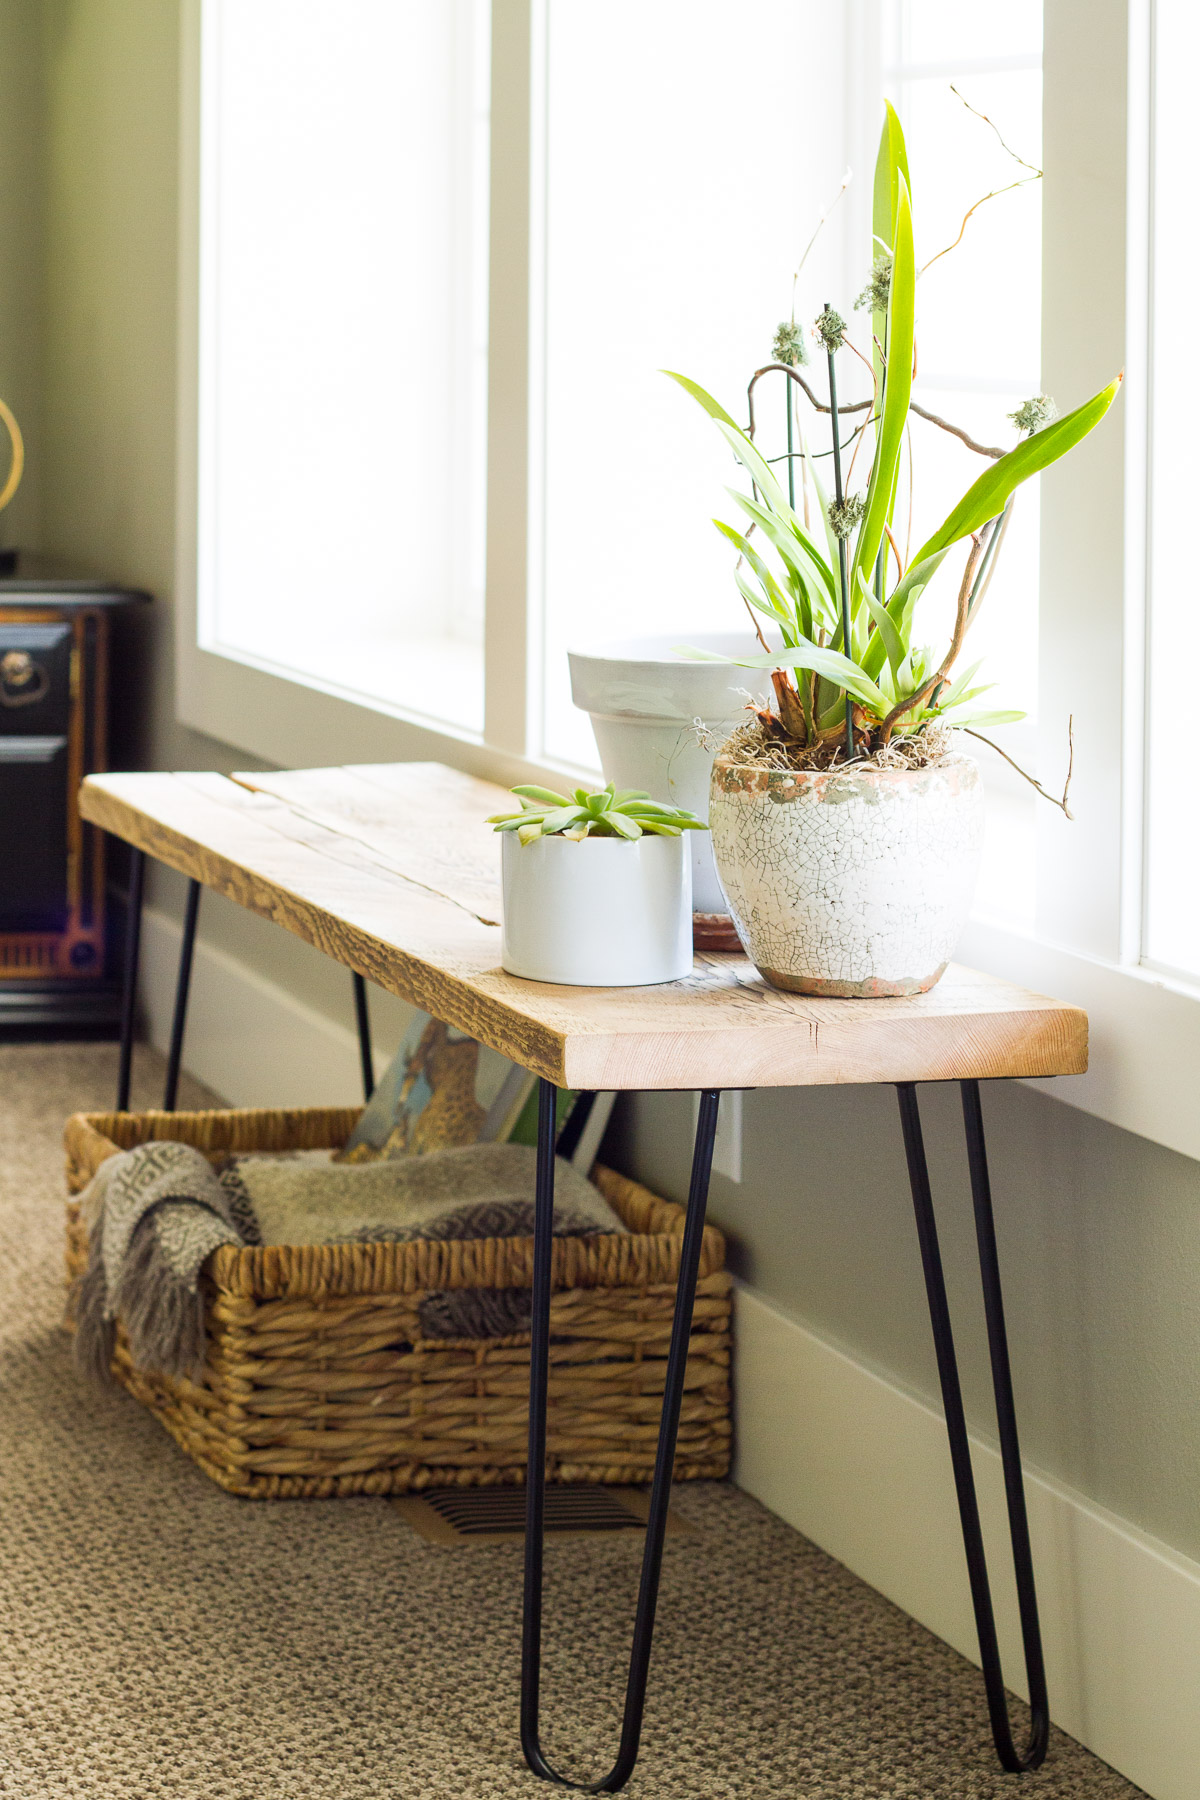 Our naturalist living room makeover included building this simple bench from hair pin legs and a leftover slab of reclaimed wood.